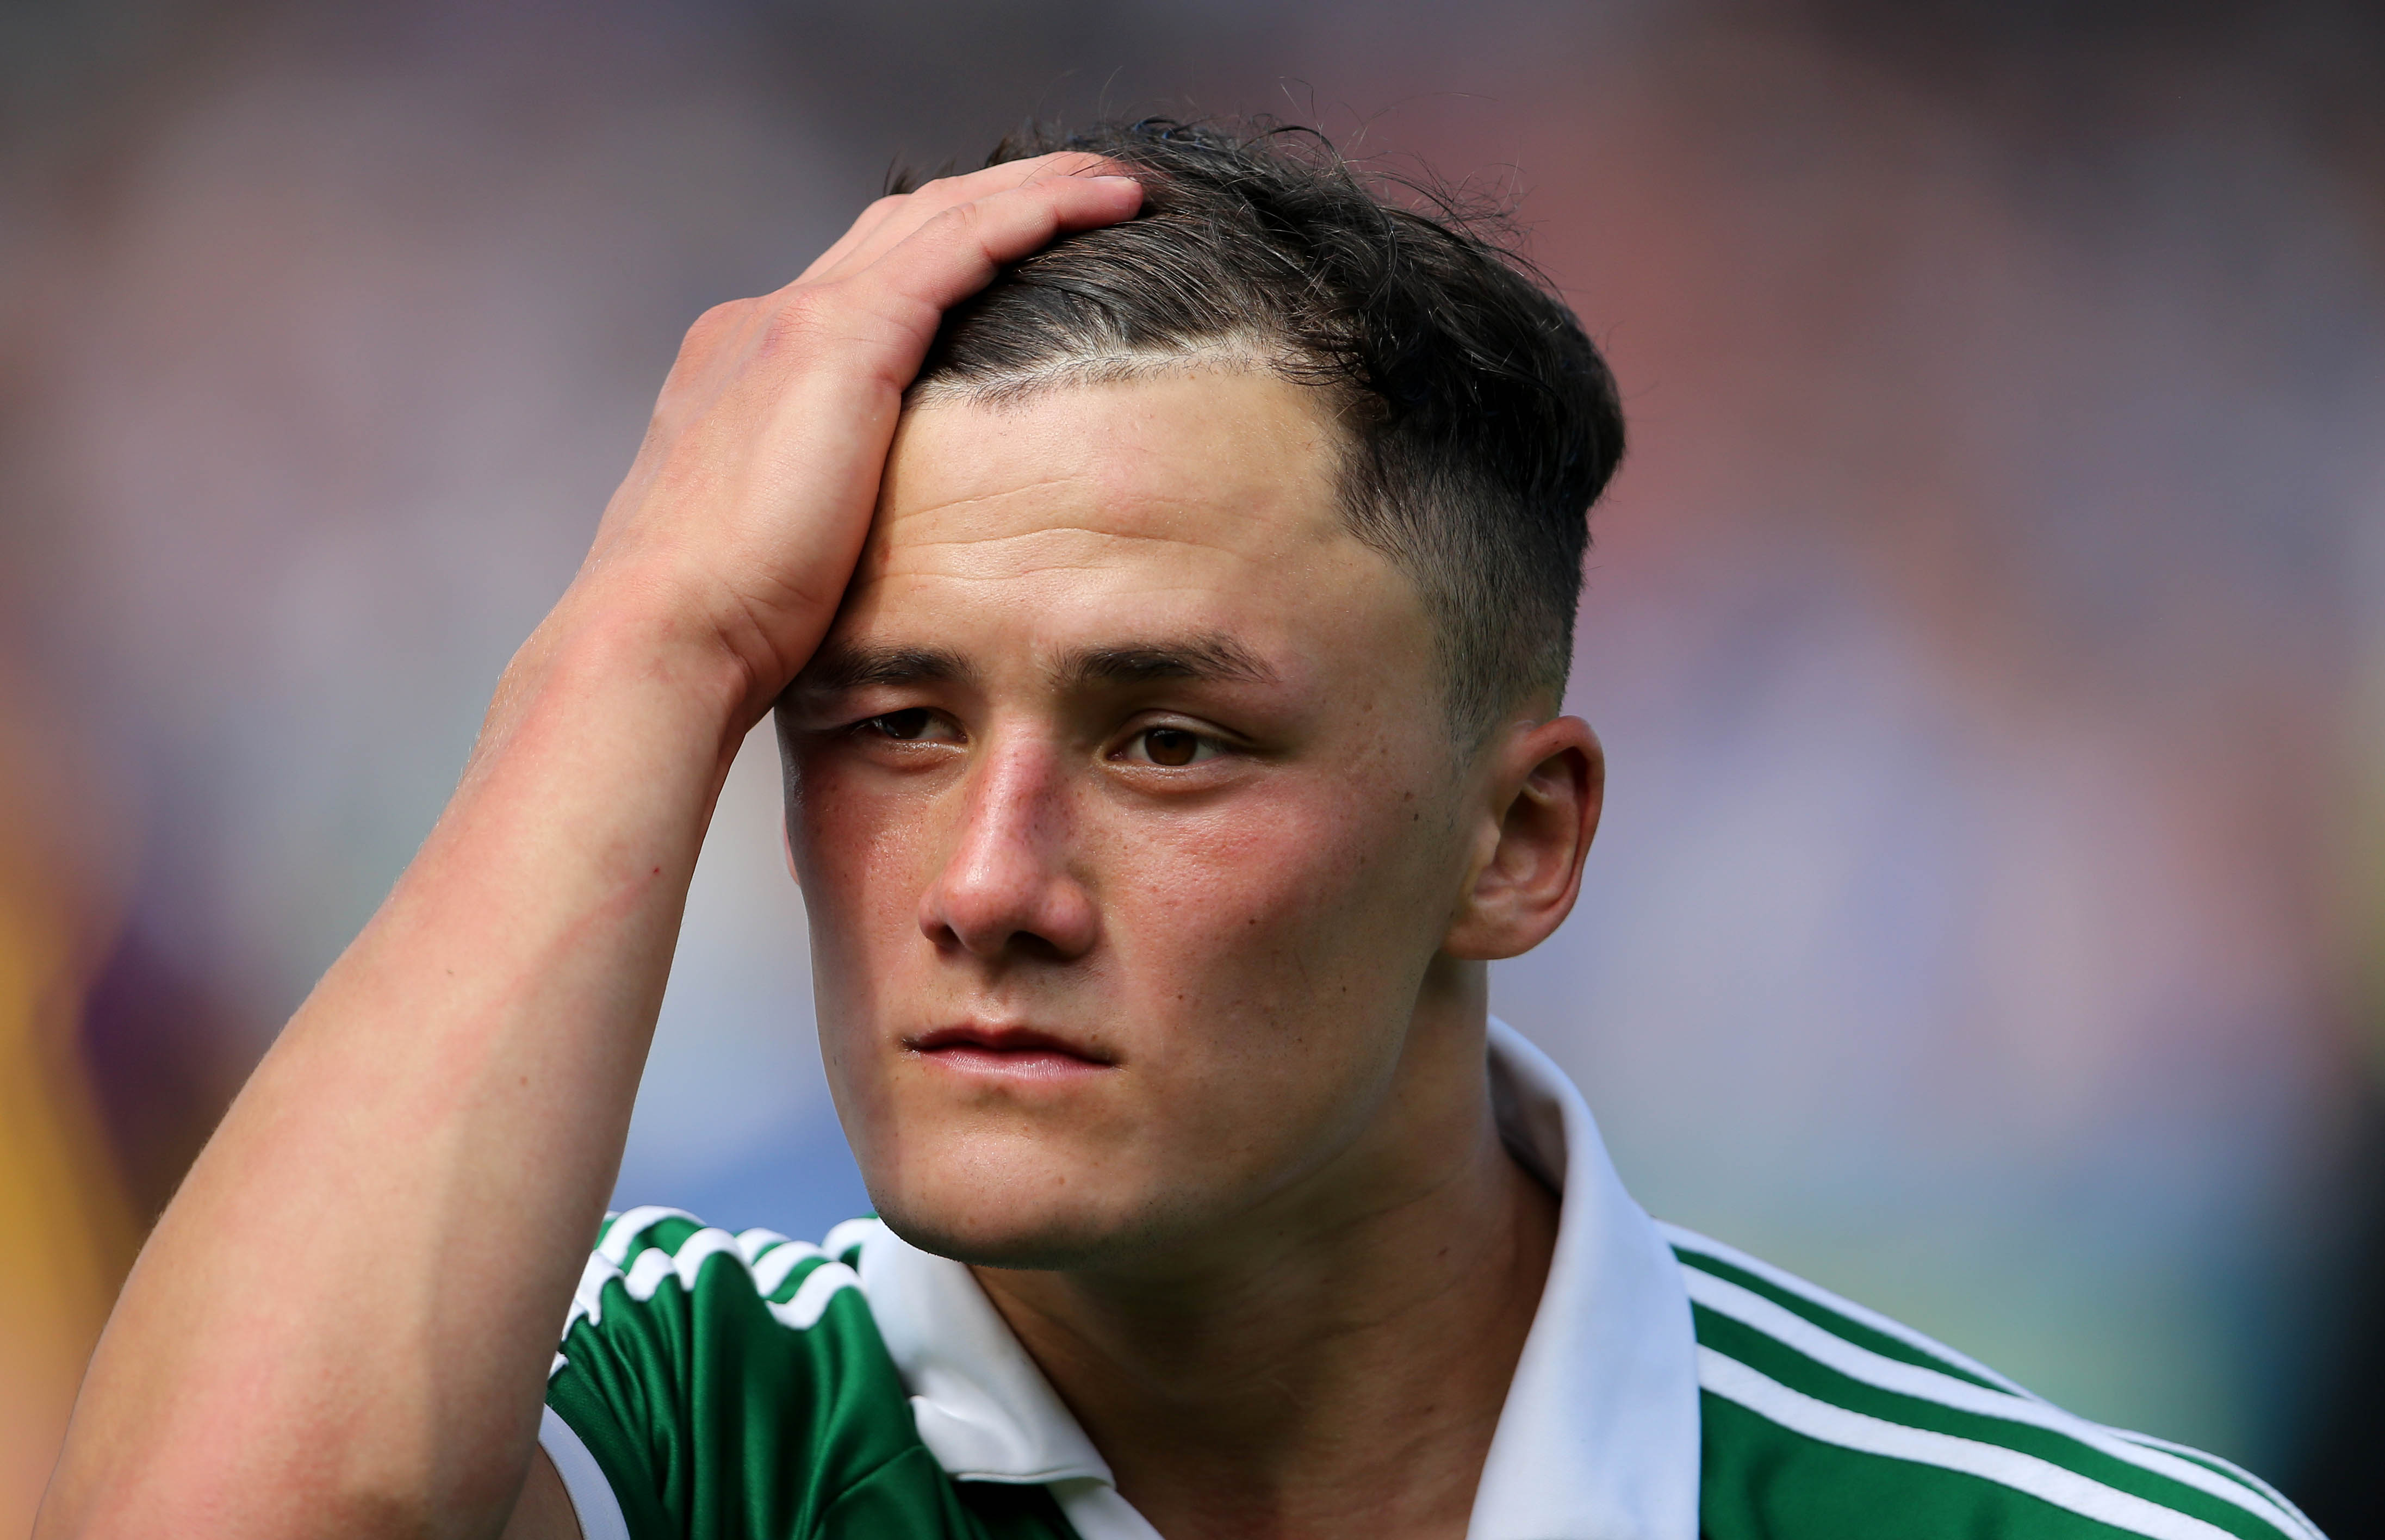 GAA Hurling All Ireland Senior Championship Quarter-Final 27/7/2014 Limerick vs Wexford A dejected Lee Chin of Wexford after the game Mandatory Credit ©INPHO/Cathal Noonan